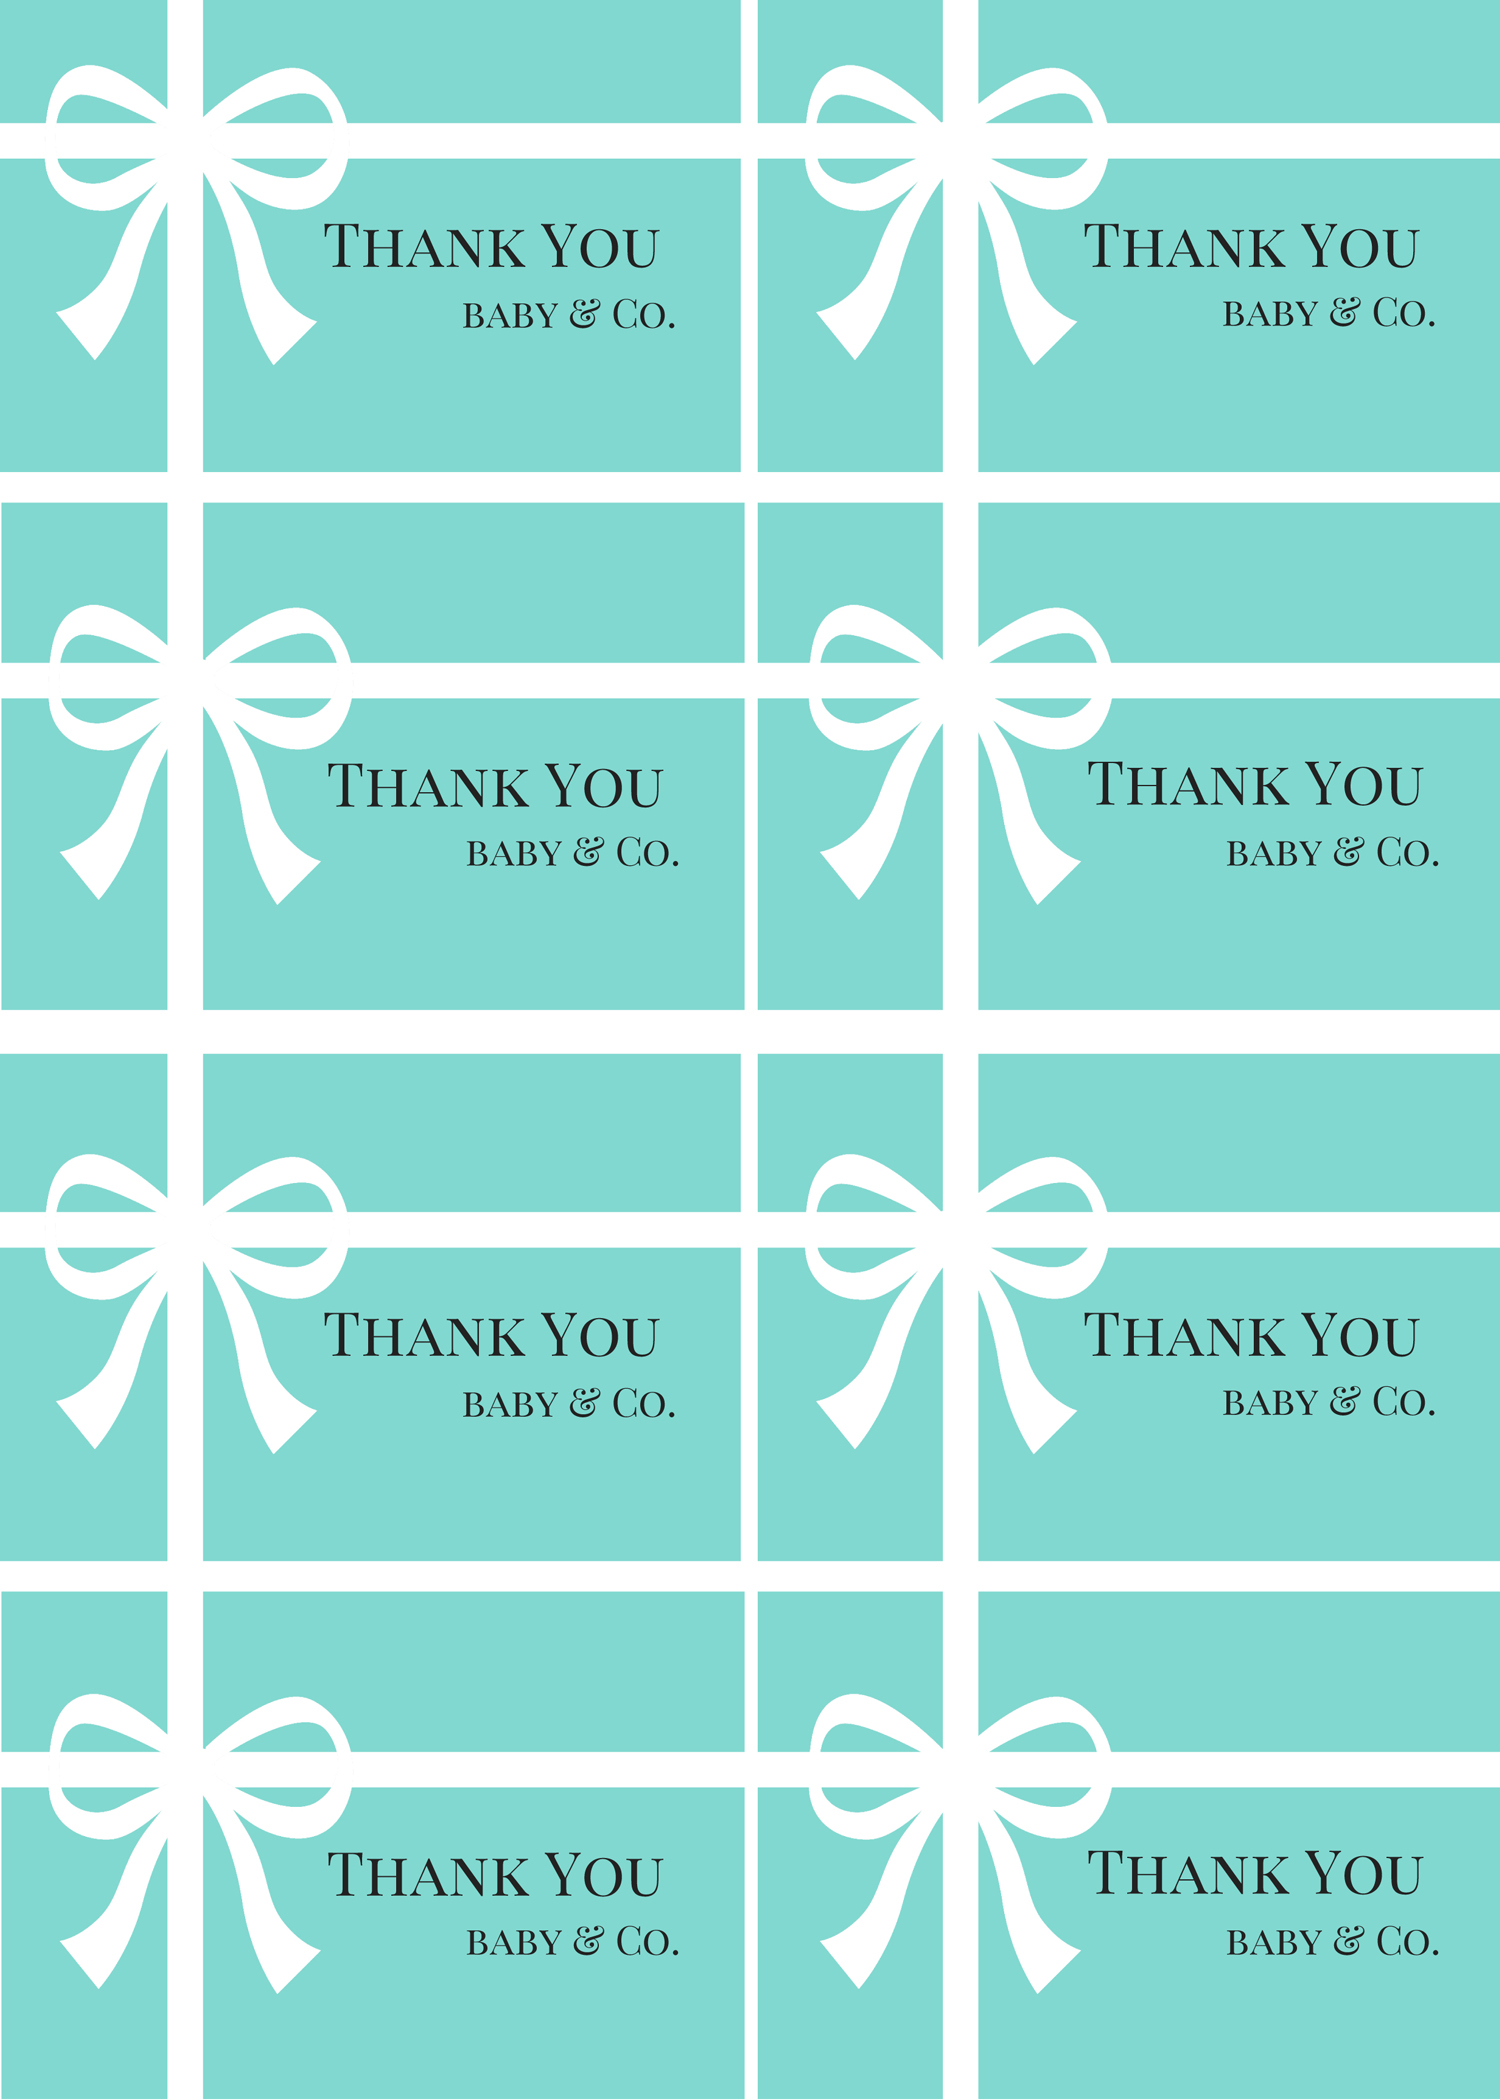 Free Printable Baby Gift Thank You Cards : Free tiffany baby shower printable ideas